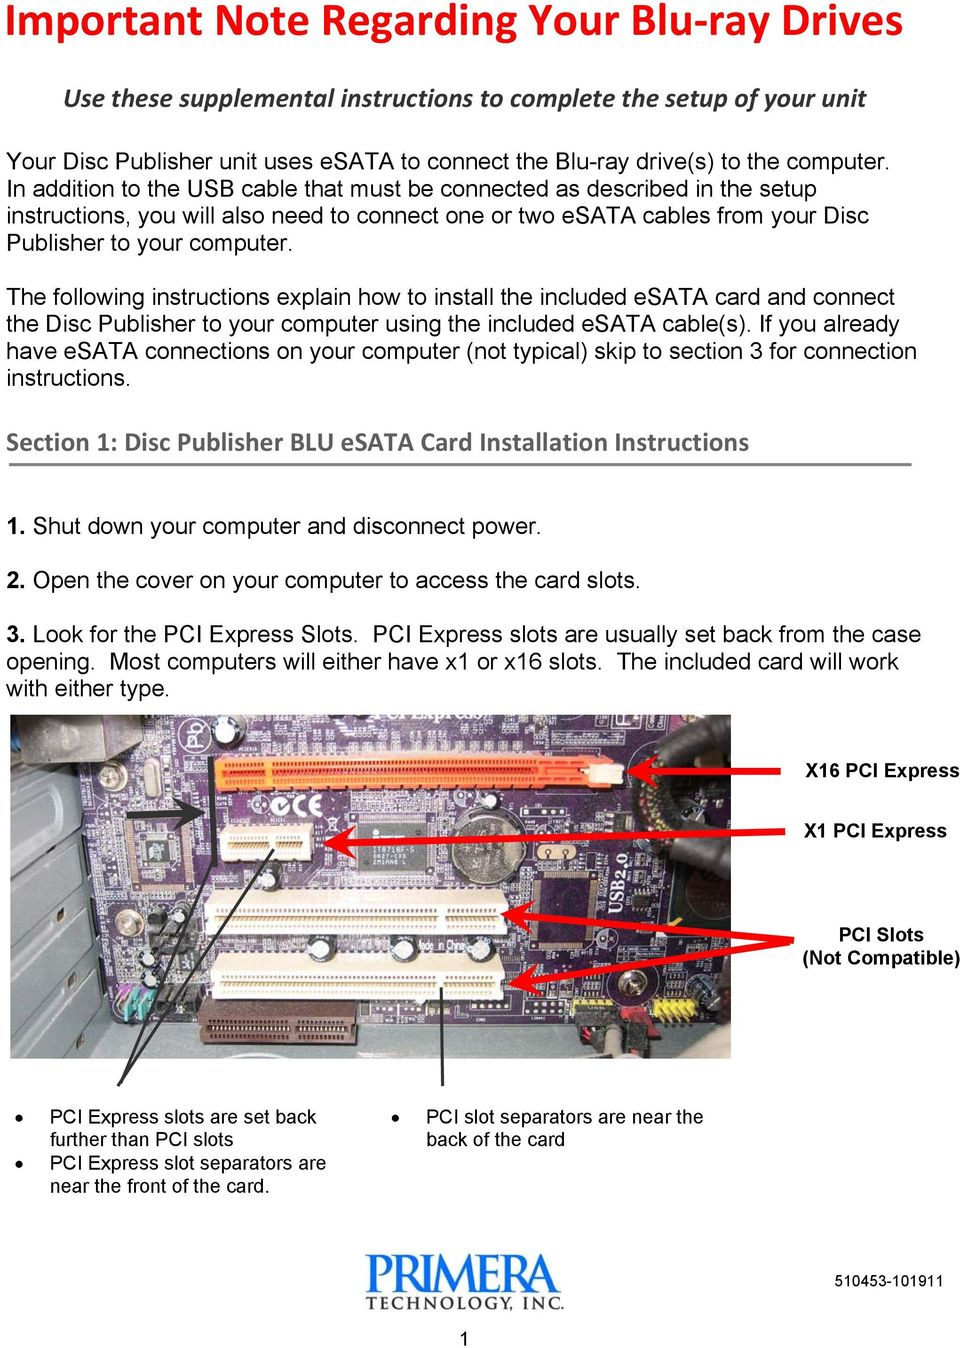 The following instructions explain how to install the included esata card and connect the Disc Publisher to your computer using the included esata cable(s).